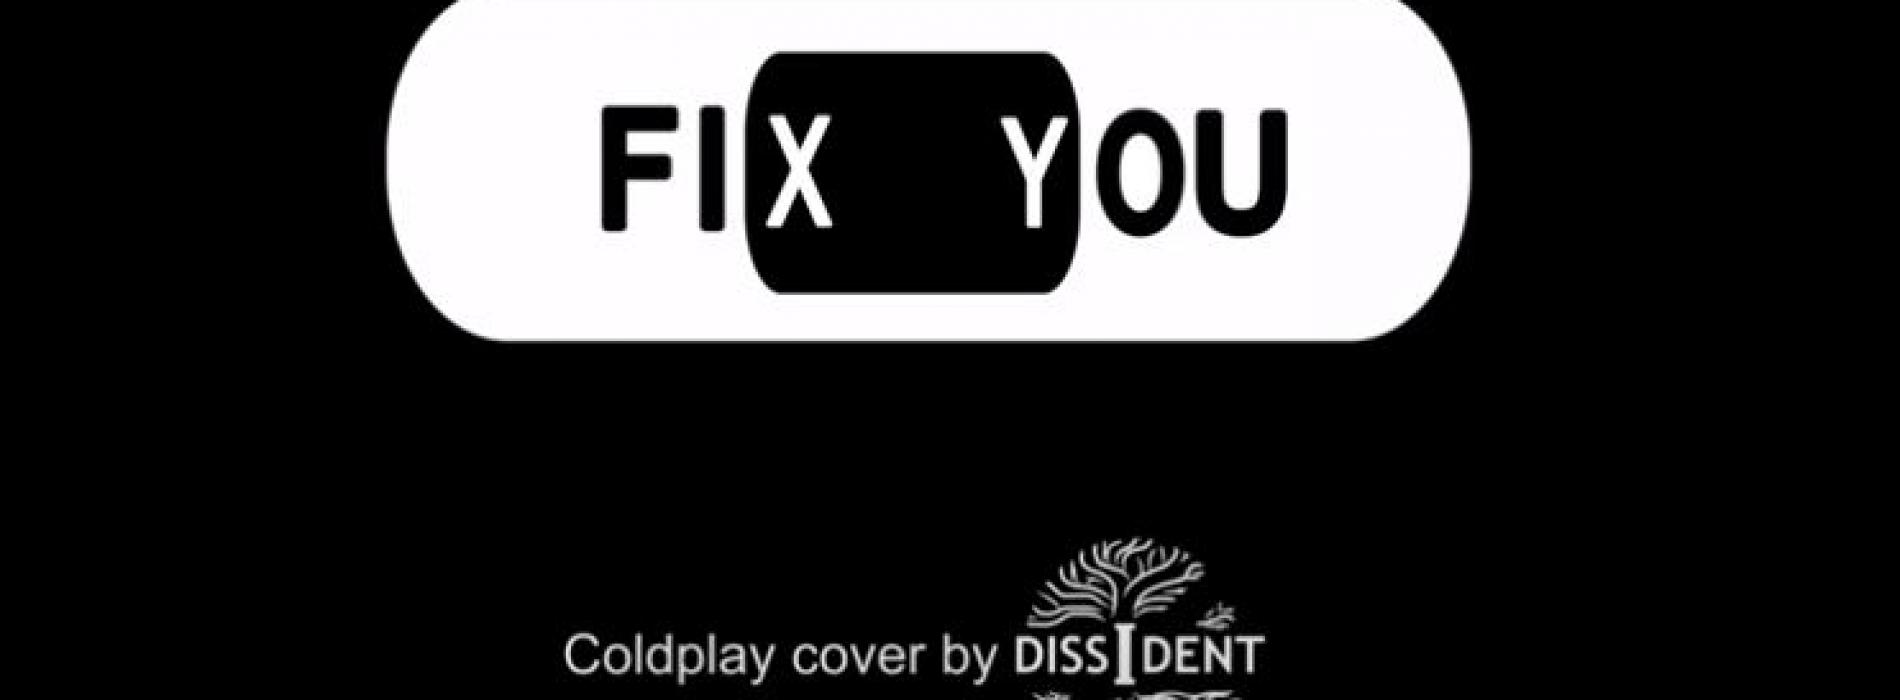 Dissident Has Covered Fix You & Want You To Be A Part of Their Upcoming Video!